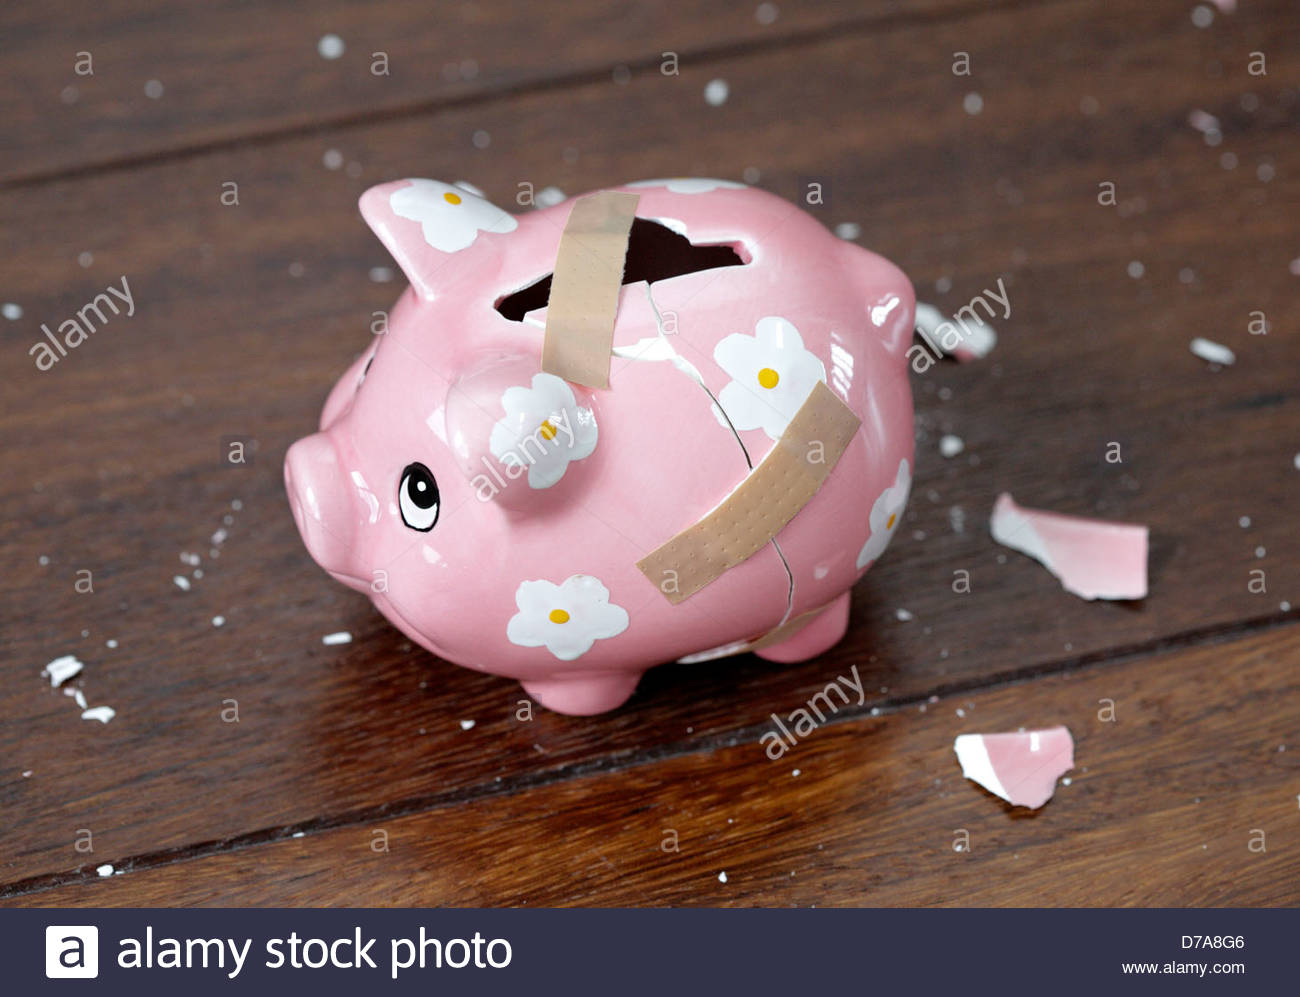 Close-up of a broken piggy bank with Bandages on it Stock Photo